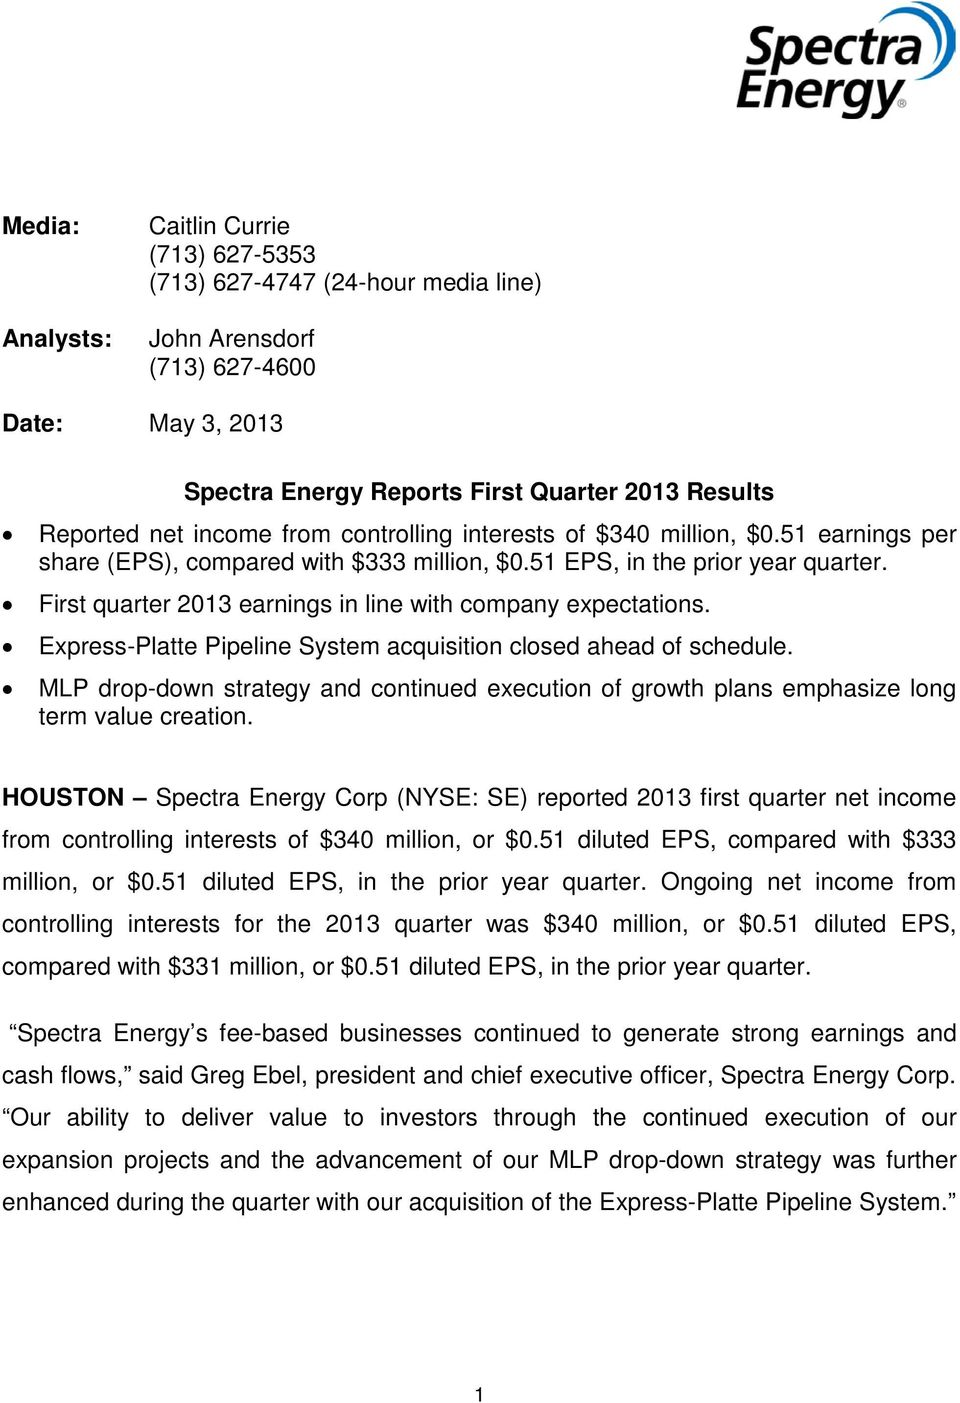 First quarter 2013 earnings in line with company expectations. Express-Platte Pipeline System acquisition closed ahead of schedule.